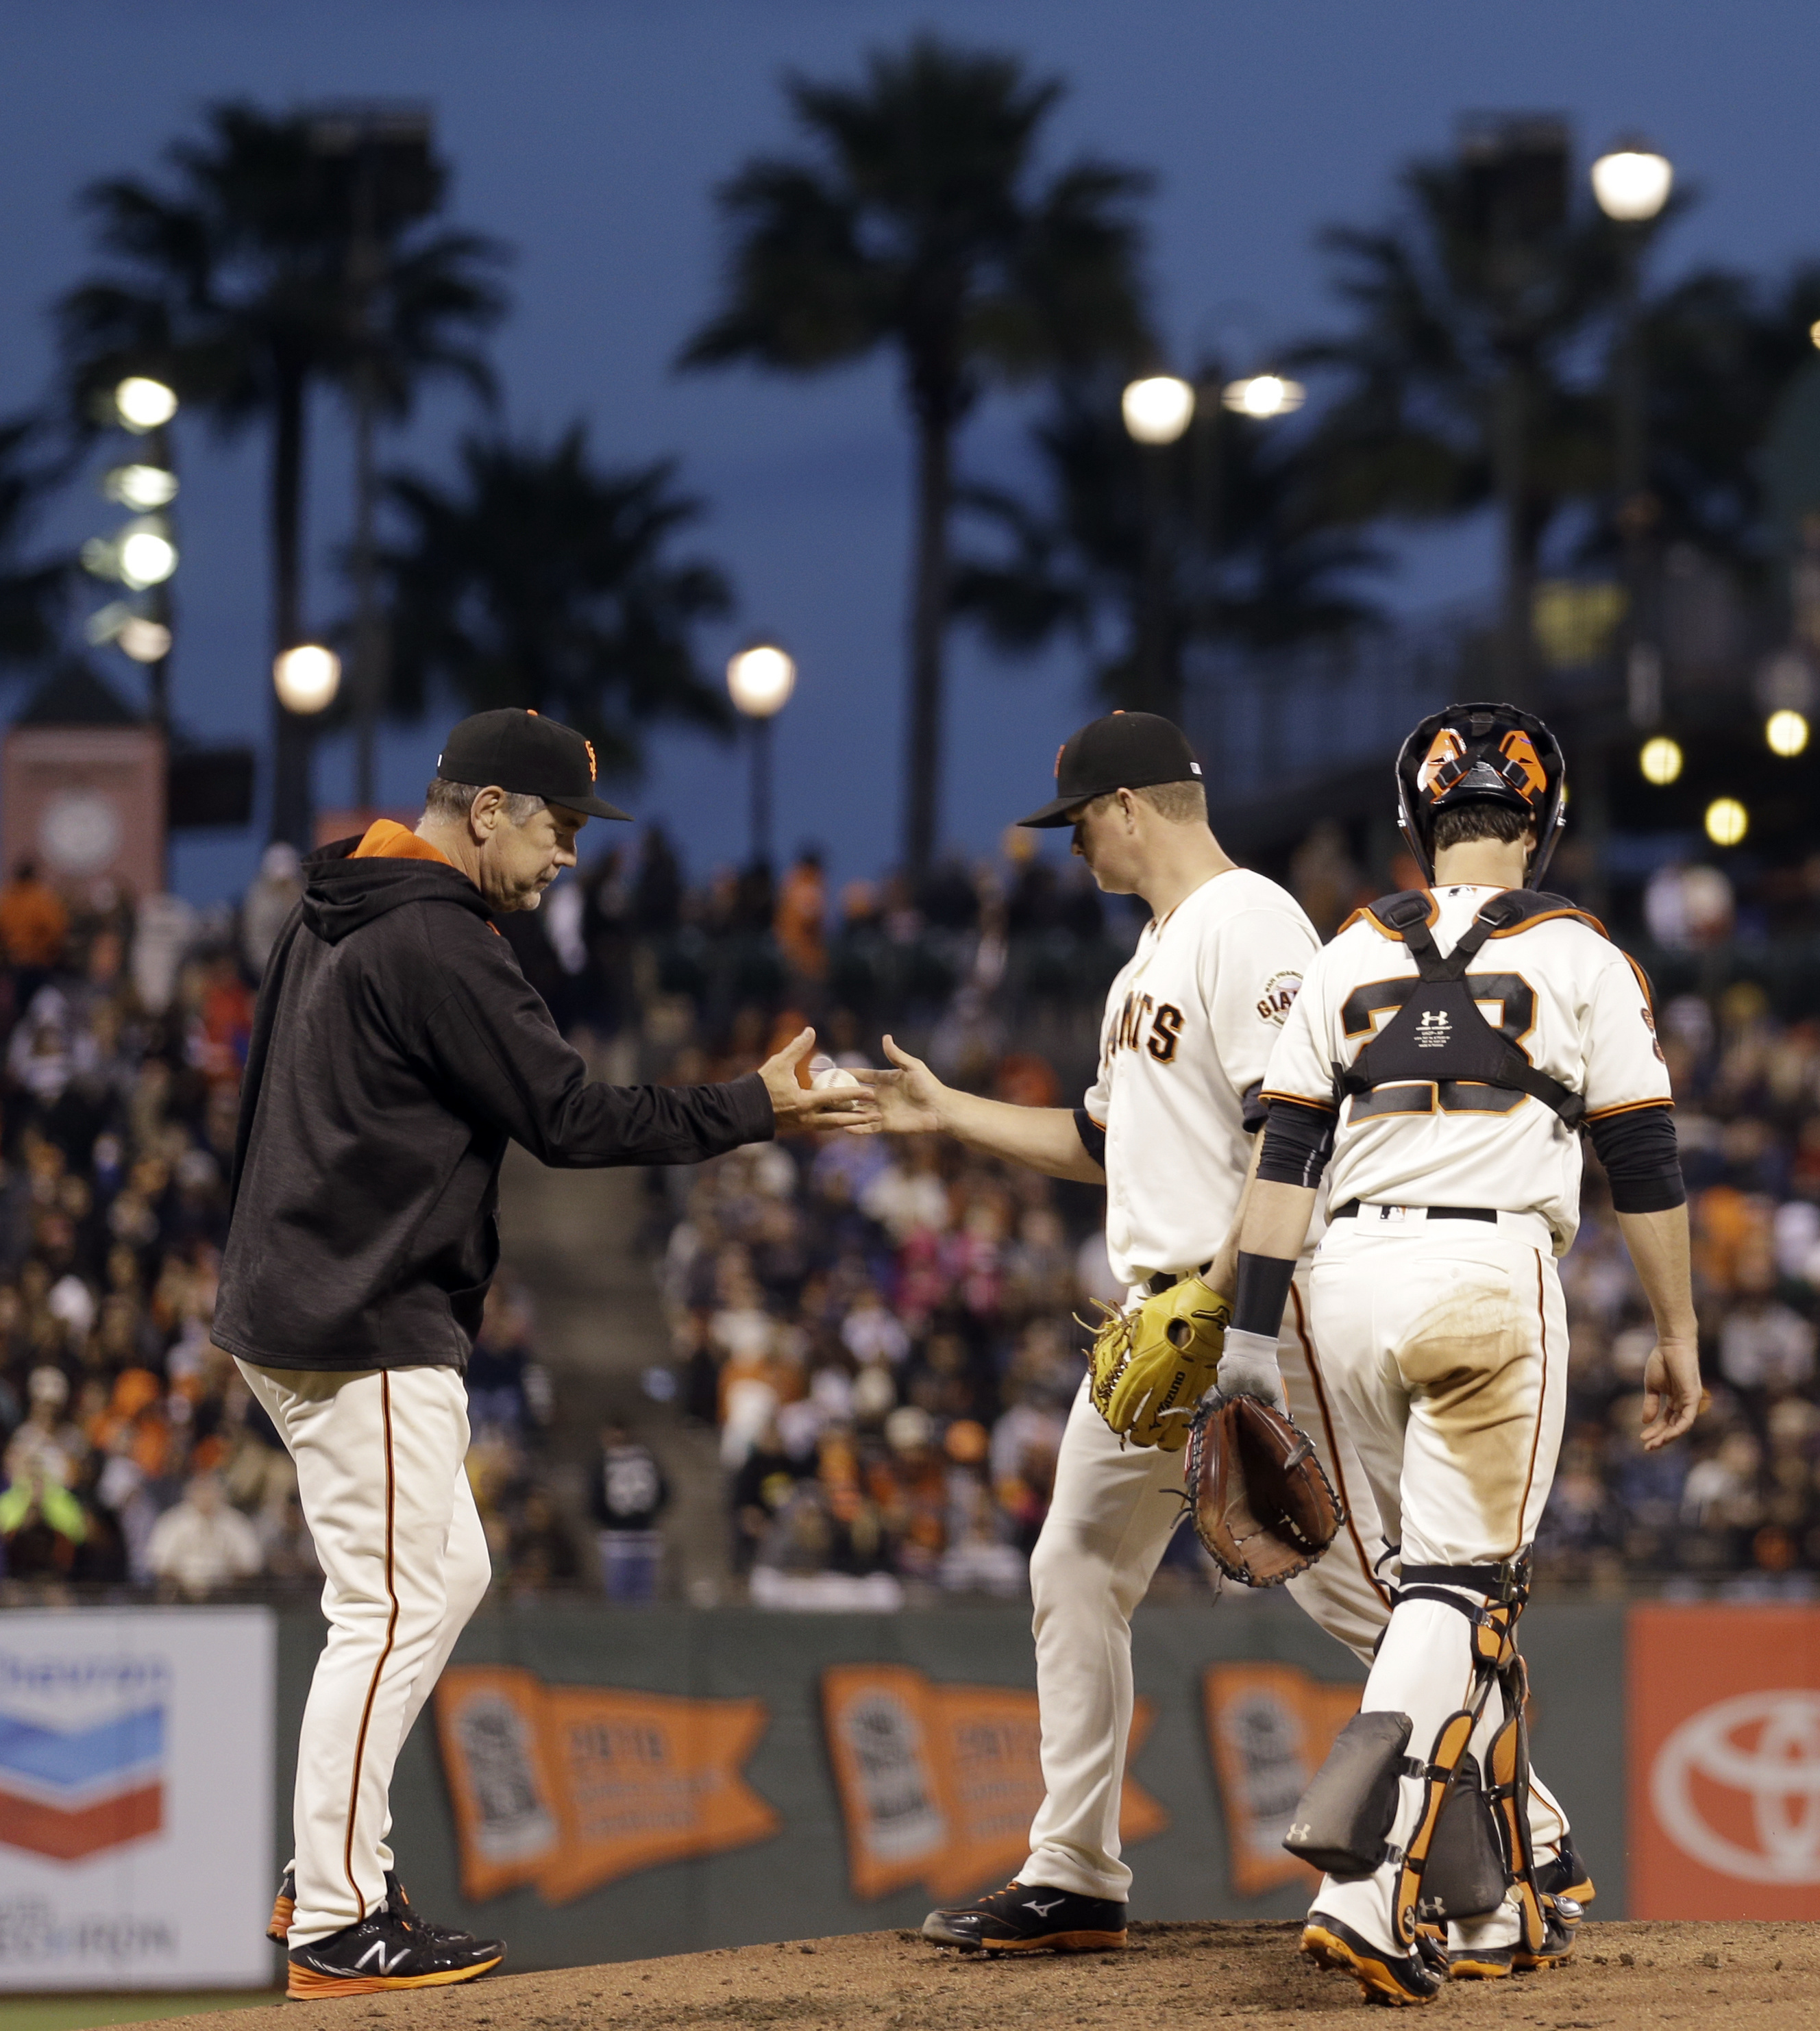 San Francisco Giants pitcher Matt Cain, center, hands the ball to manager Bruce Bochy during the fourth inning of a baseball game against the Milwaukee Brewers on Monday, June 13, 2016, in San Francisco. (AP Photo/Ben Margot)